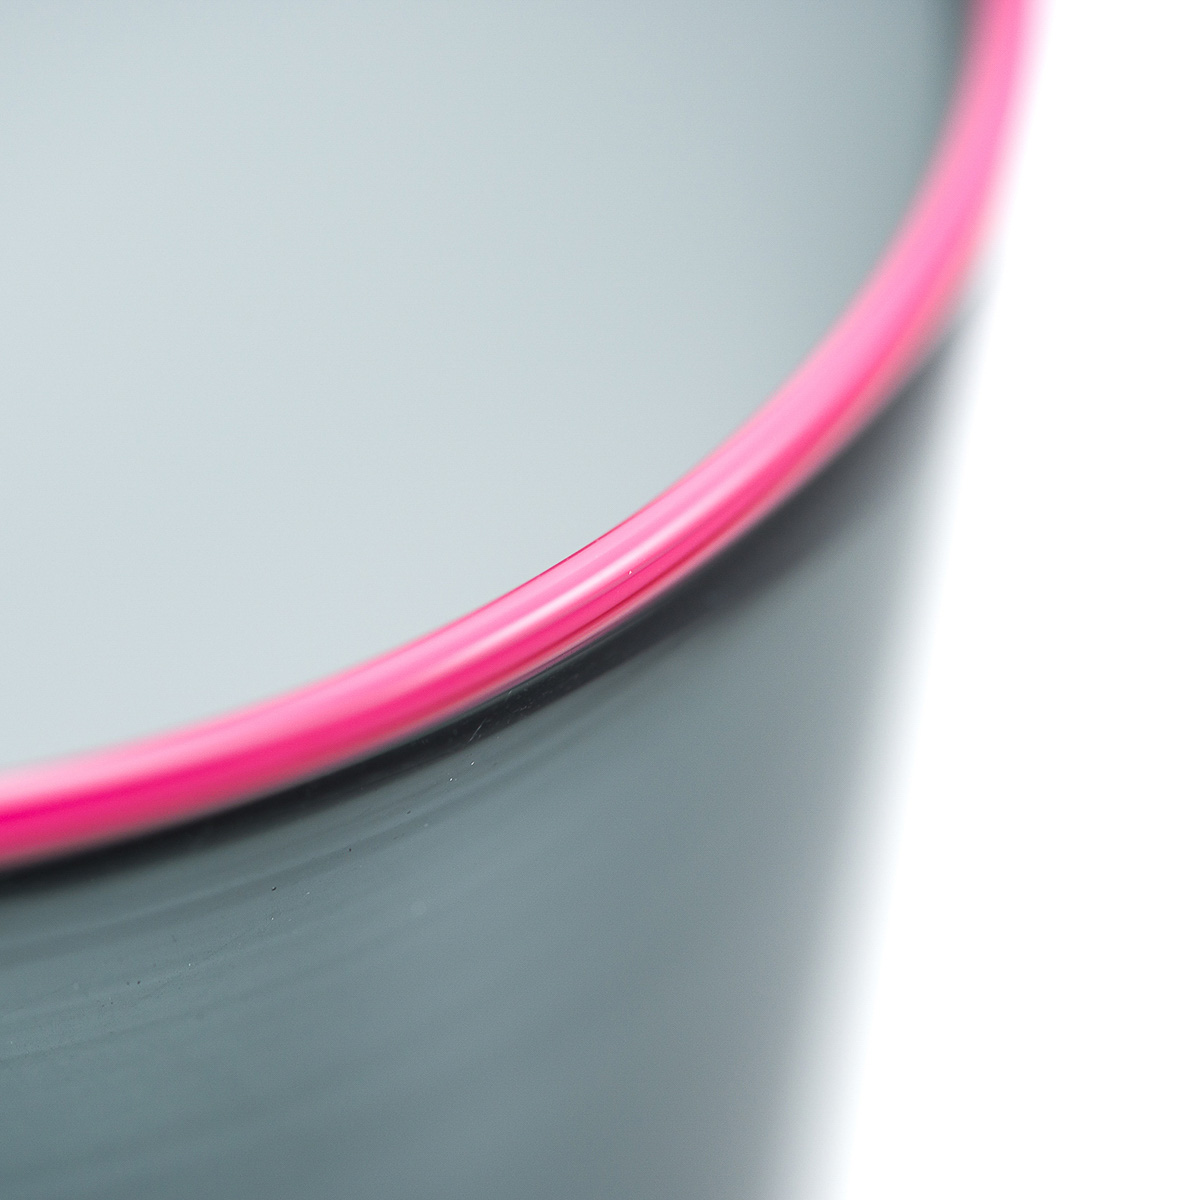 roi-glass-giberto-murano-venice-design-luxury-pink-rim-water-detail